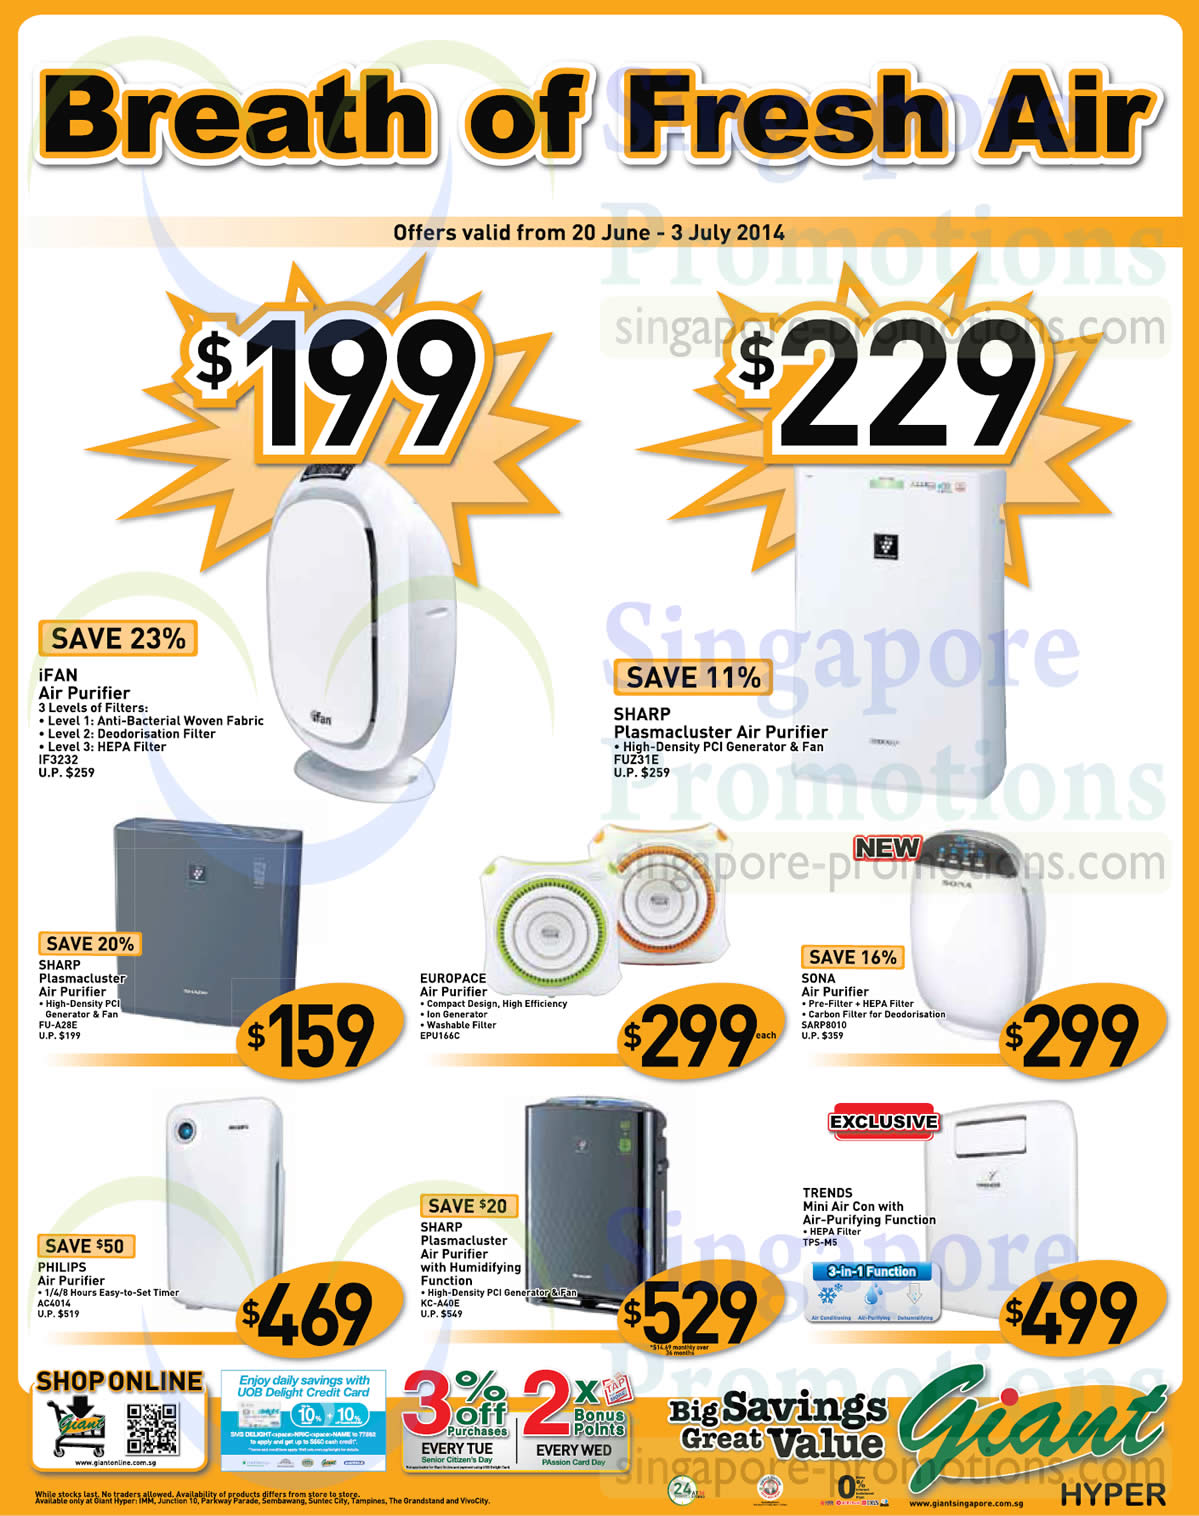 Giant Hypermarket Cooling Appliances Offers 20 Jun – 3 Jul 2014 #C68205